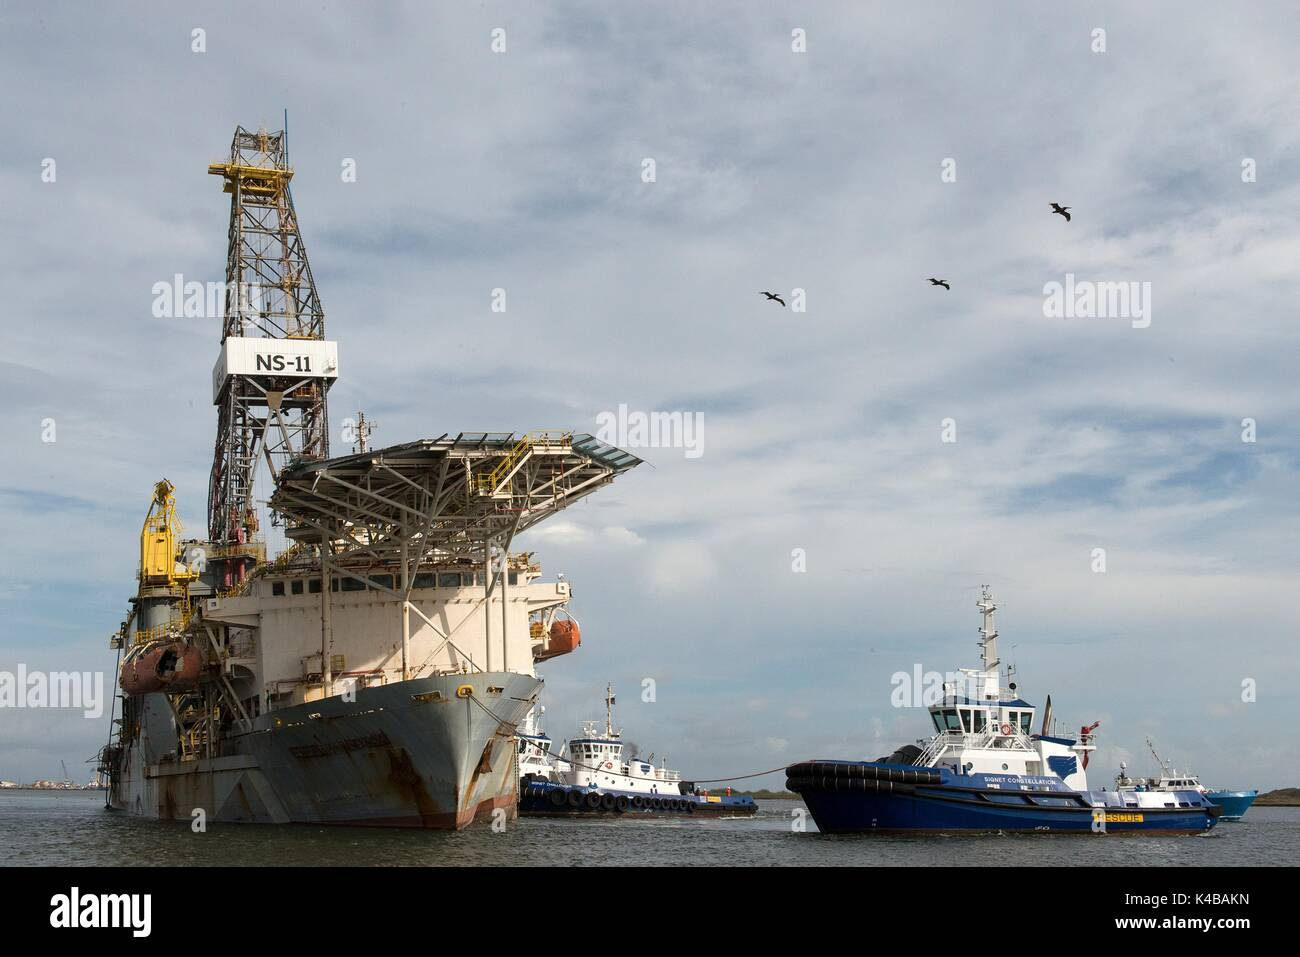 Rescue and salvage tug boats pull the grounded drill ship Paragon DPDS1 upright in the Aransas Pass shipping channel in the aftermath of Hurricane Harvey September 4, 2017 in Corpus Christi, Texas. The recovered vessel will be towed to Gulf Marine Fabricators and salvaged. - Stock Image